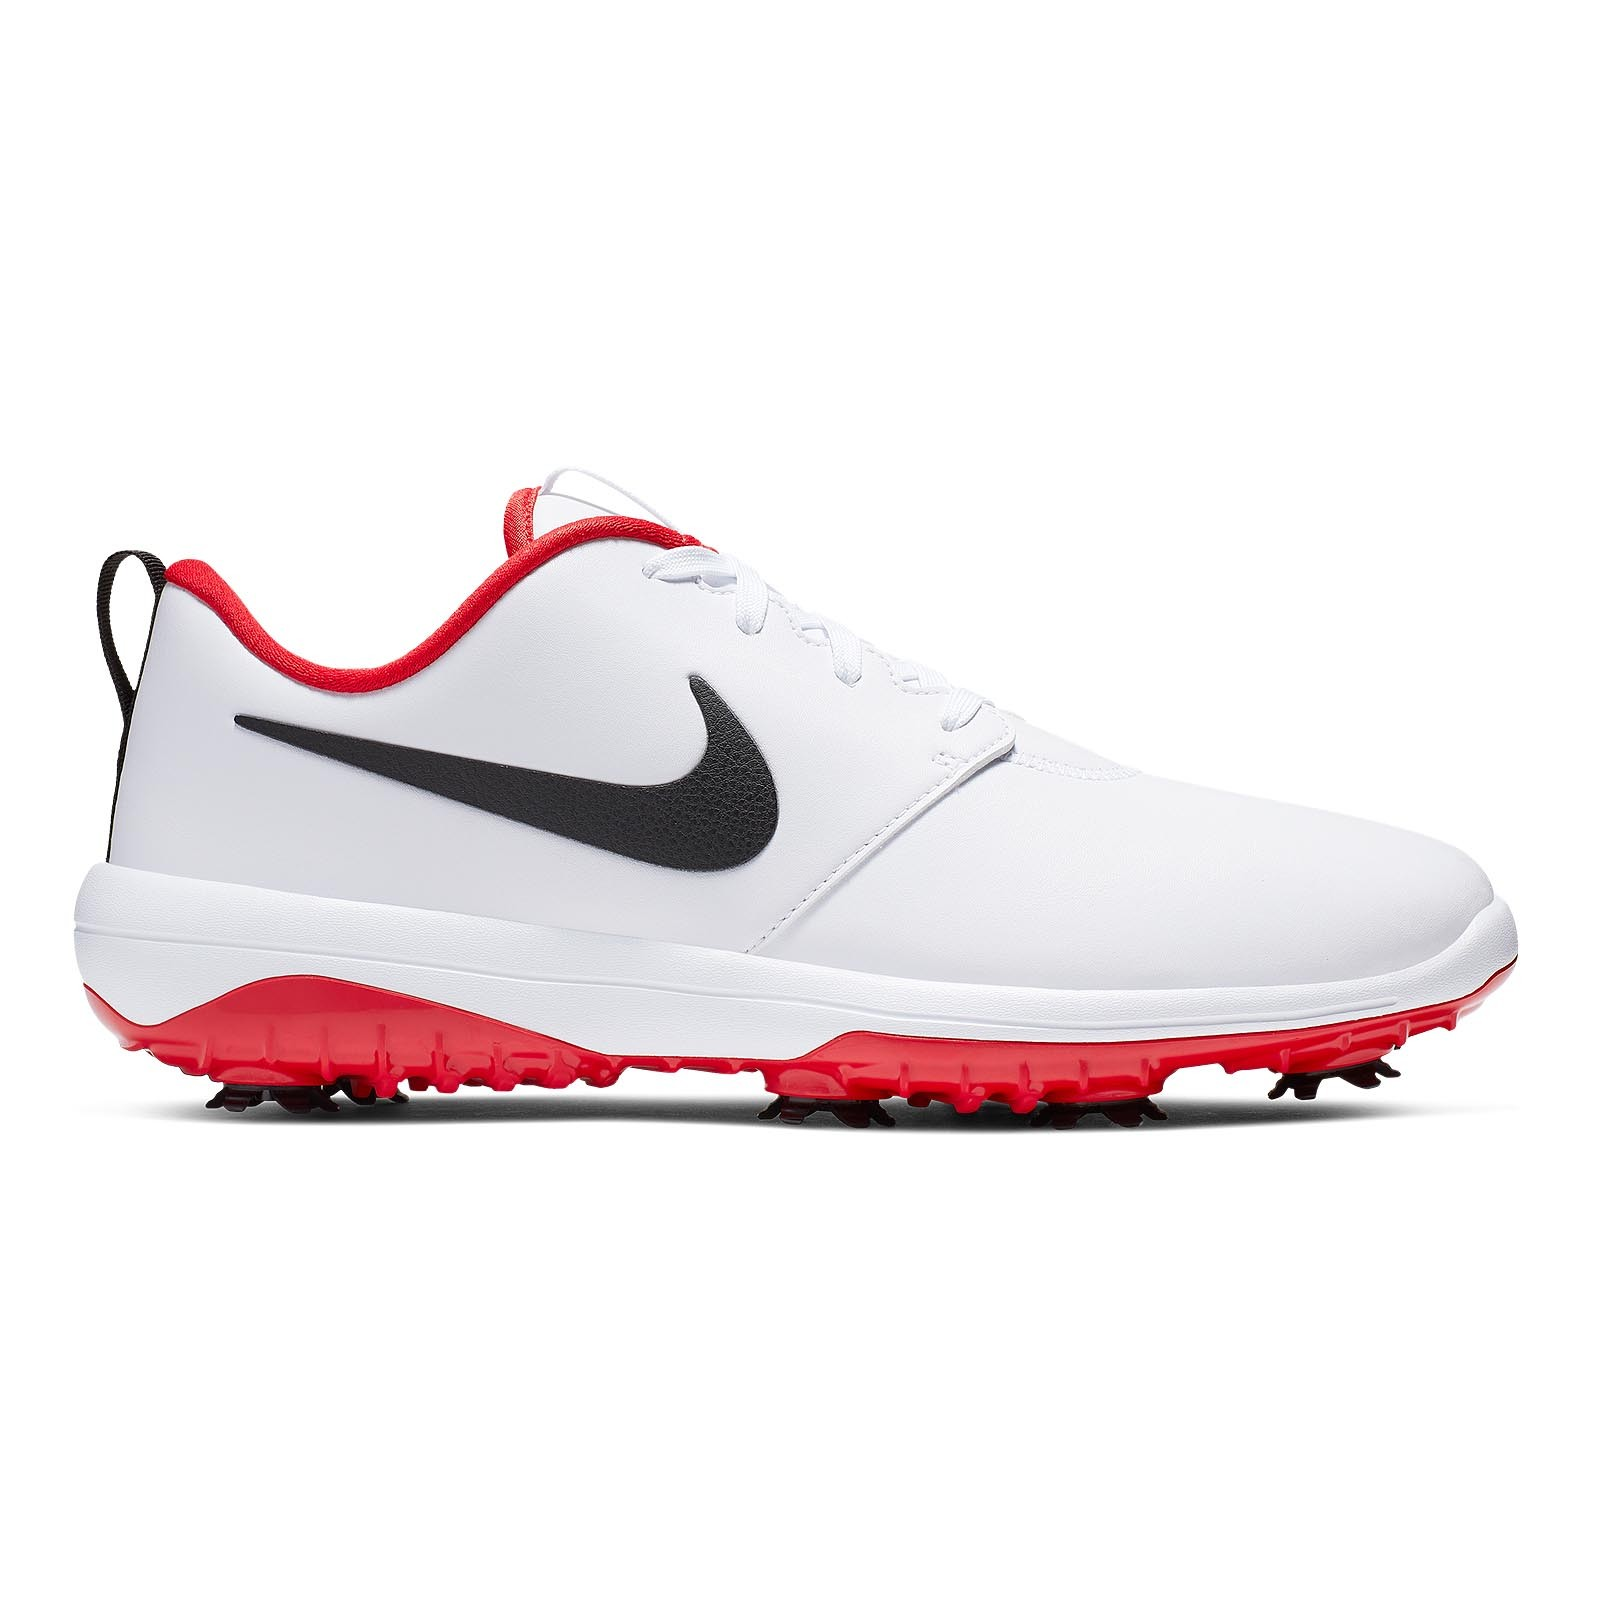 24a2bc13e98b 1477119634Roshe G Tour White-Black-Red.jpg